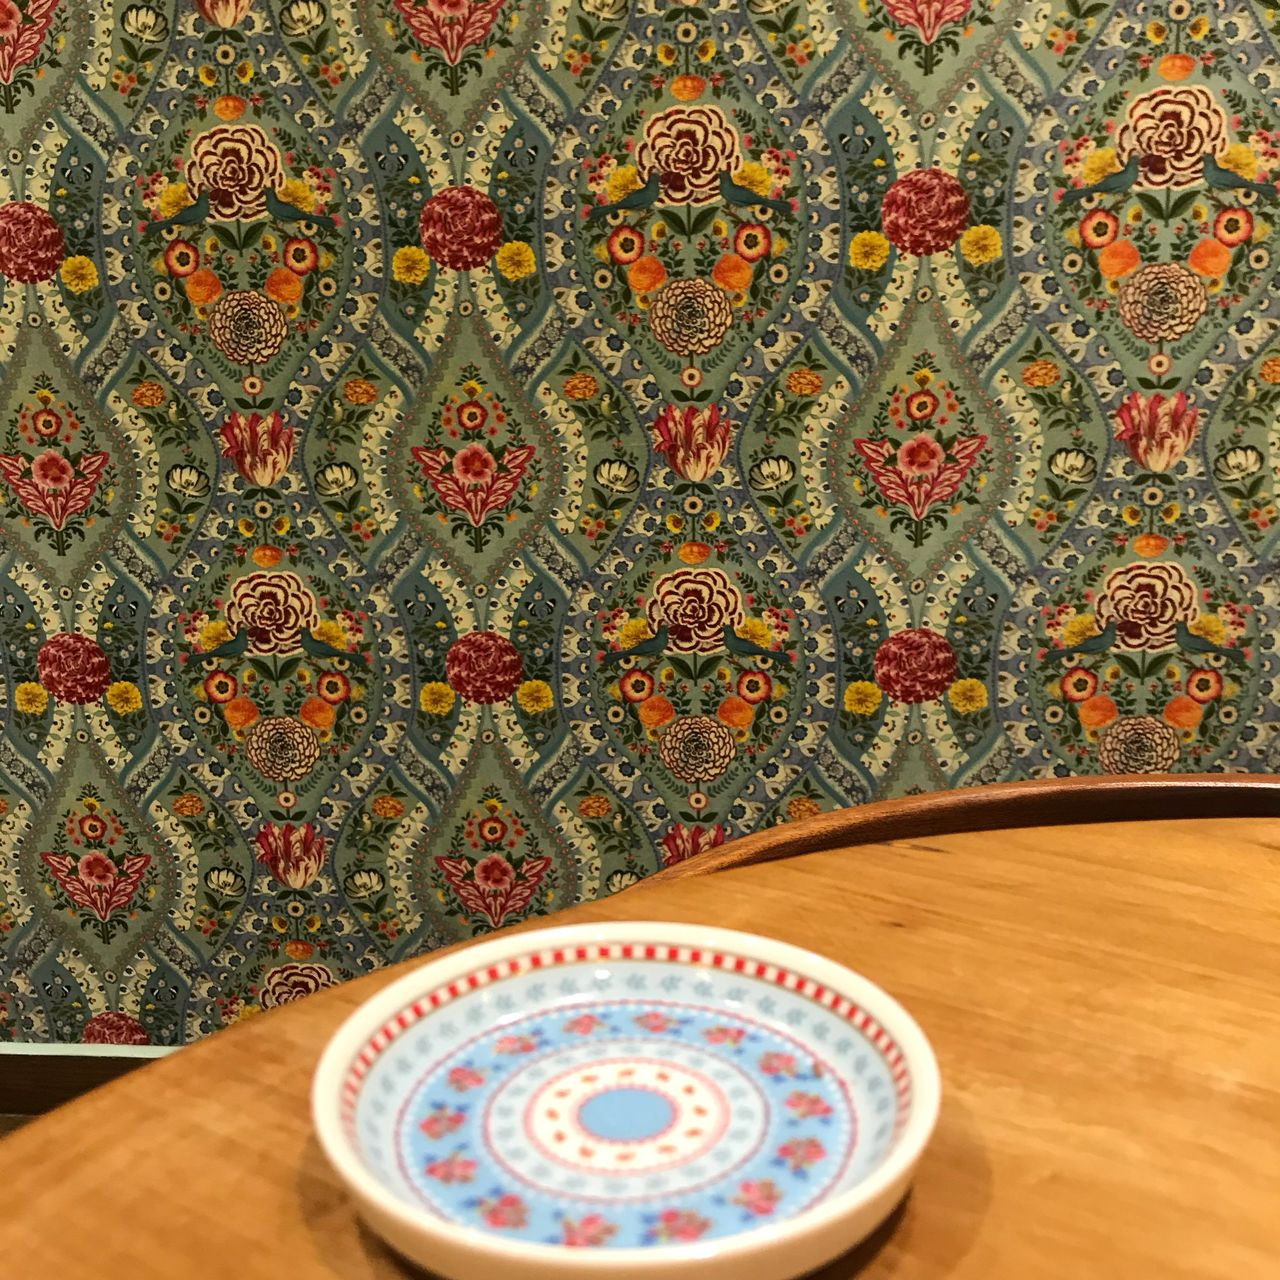 pattern, indoors, design, no people, table, multi colored, floral pattern, still life, wood - material, shape, close-up, art and craft, craft, flooring, high angle view, circle, geometric shape, plate, creativity